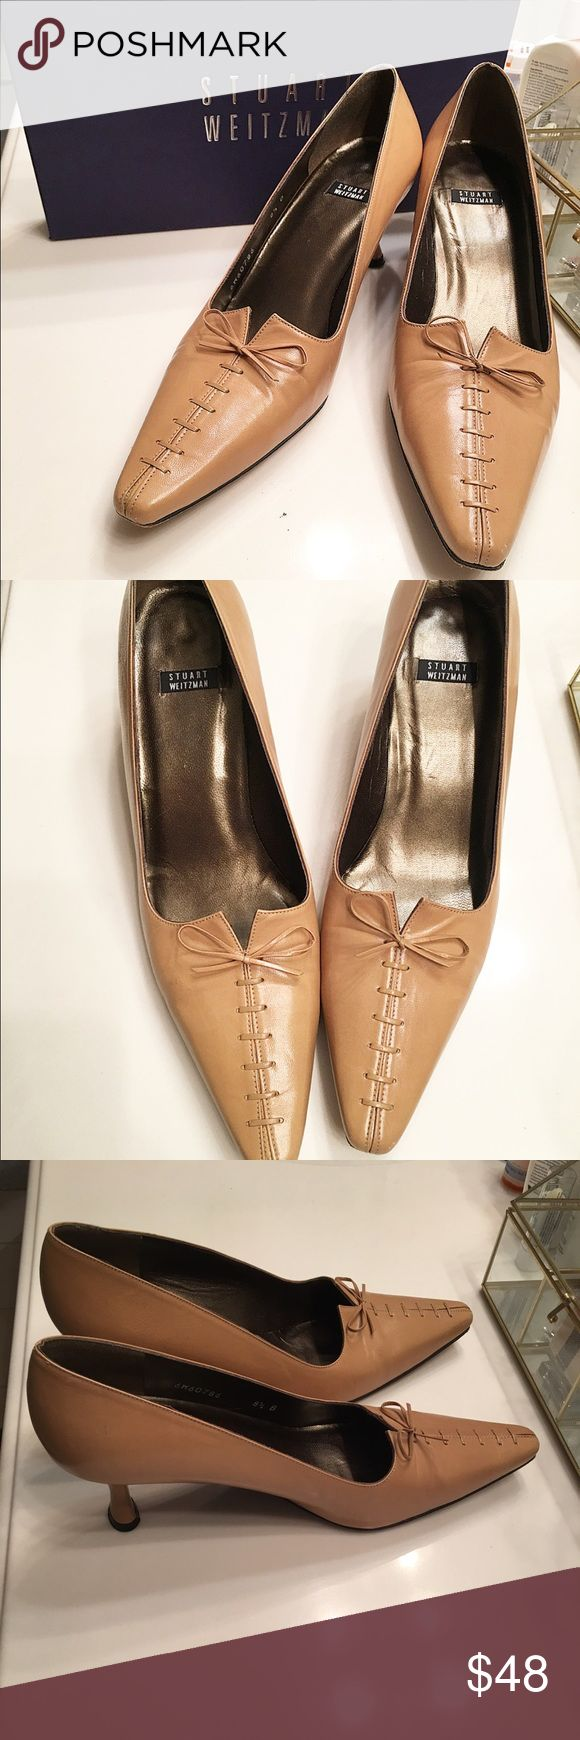 Stuart Weitzman Camel Pump Tirade style, leather material and sole, Lace up and bow detail, small signs of wear on bottom, great condition Stuart Weitzman Shoes Heels